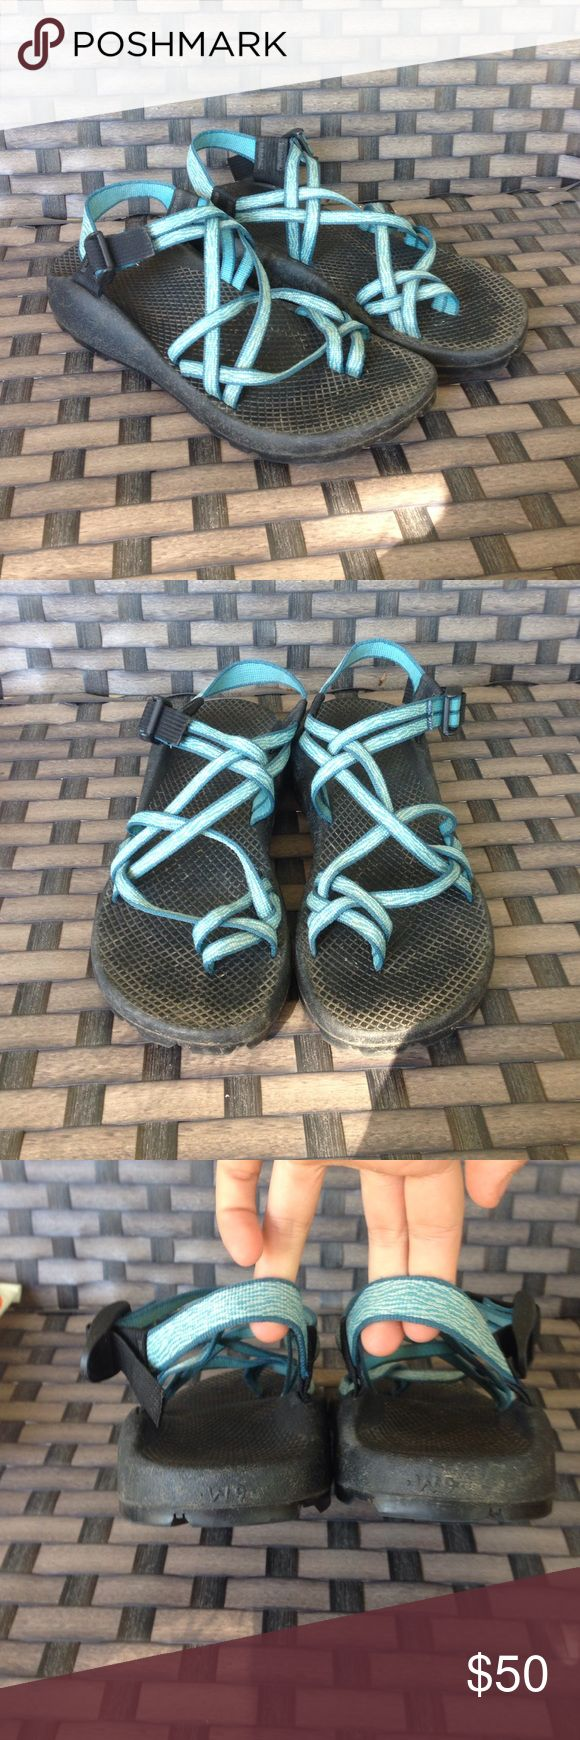 Blue Chaco sandals Good used condition women's 9 Chacos Shoes Sandals